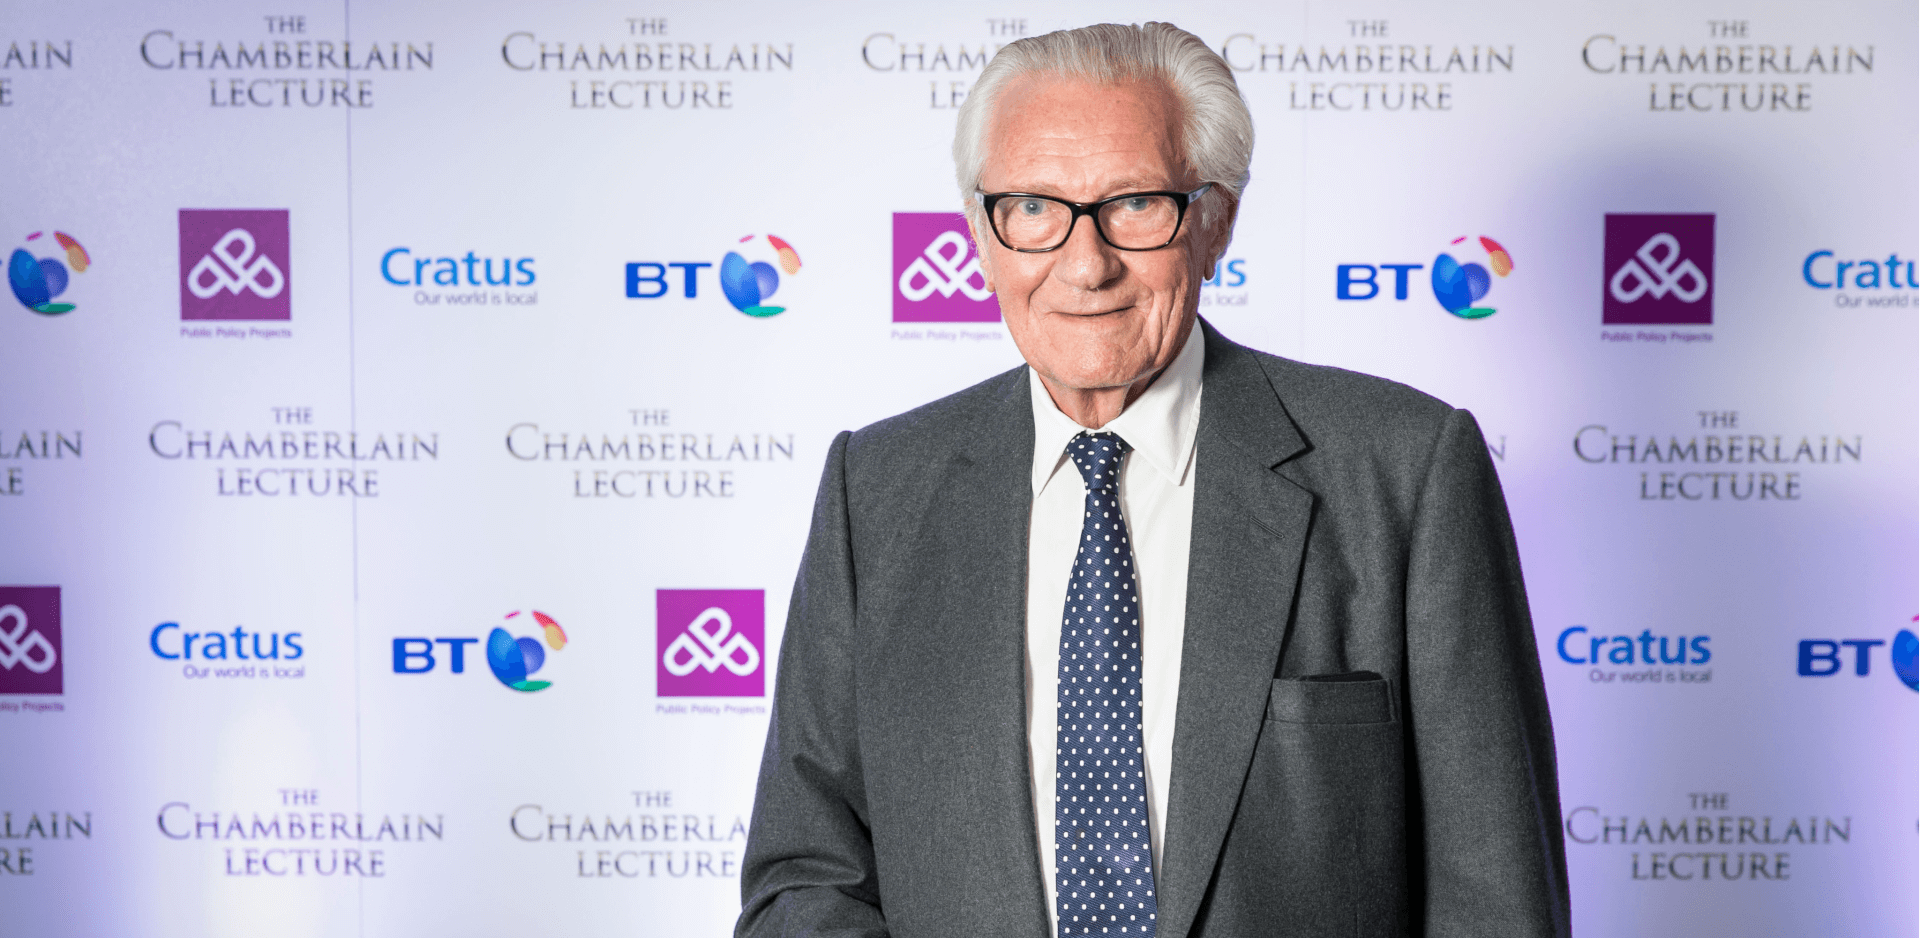 Cratus in conversation with Lord Heseltine